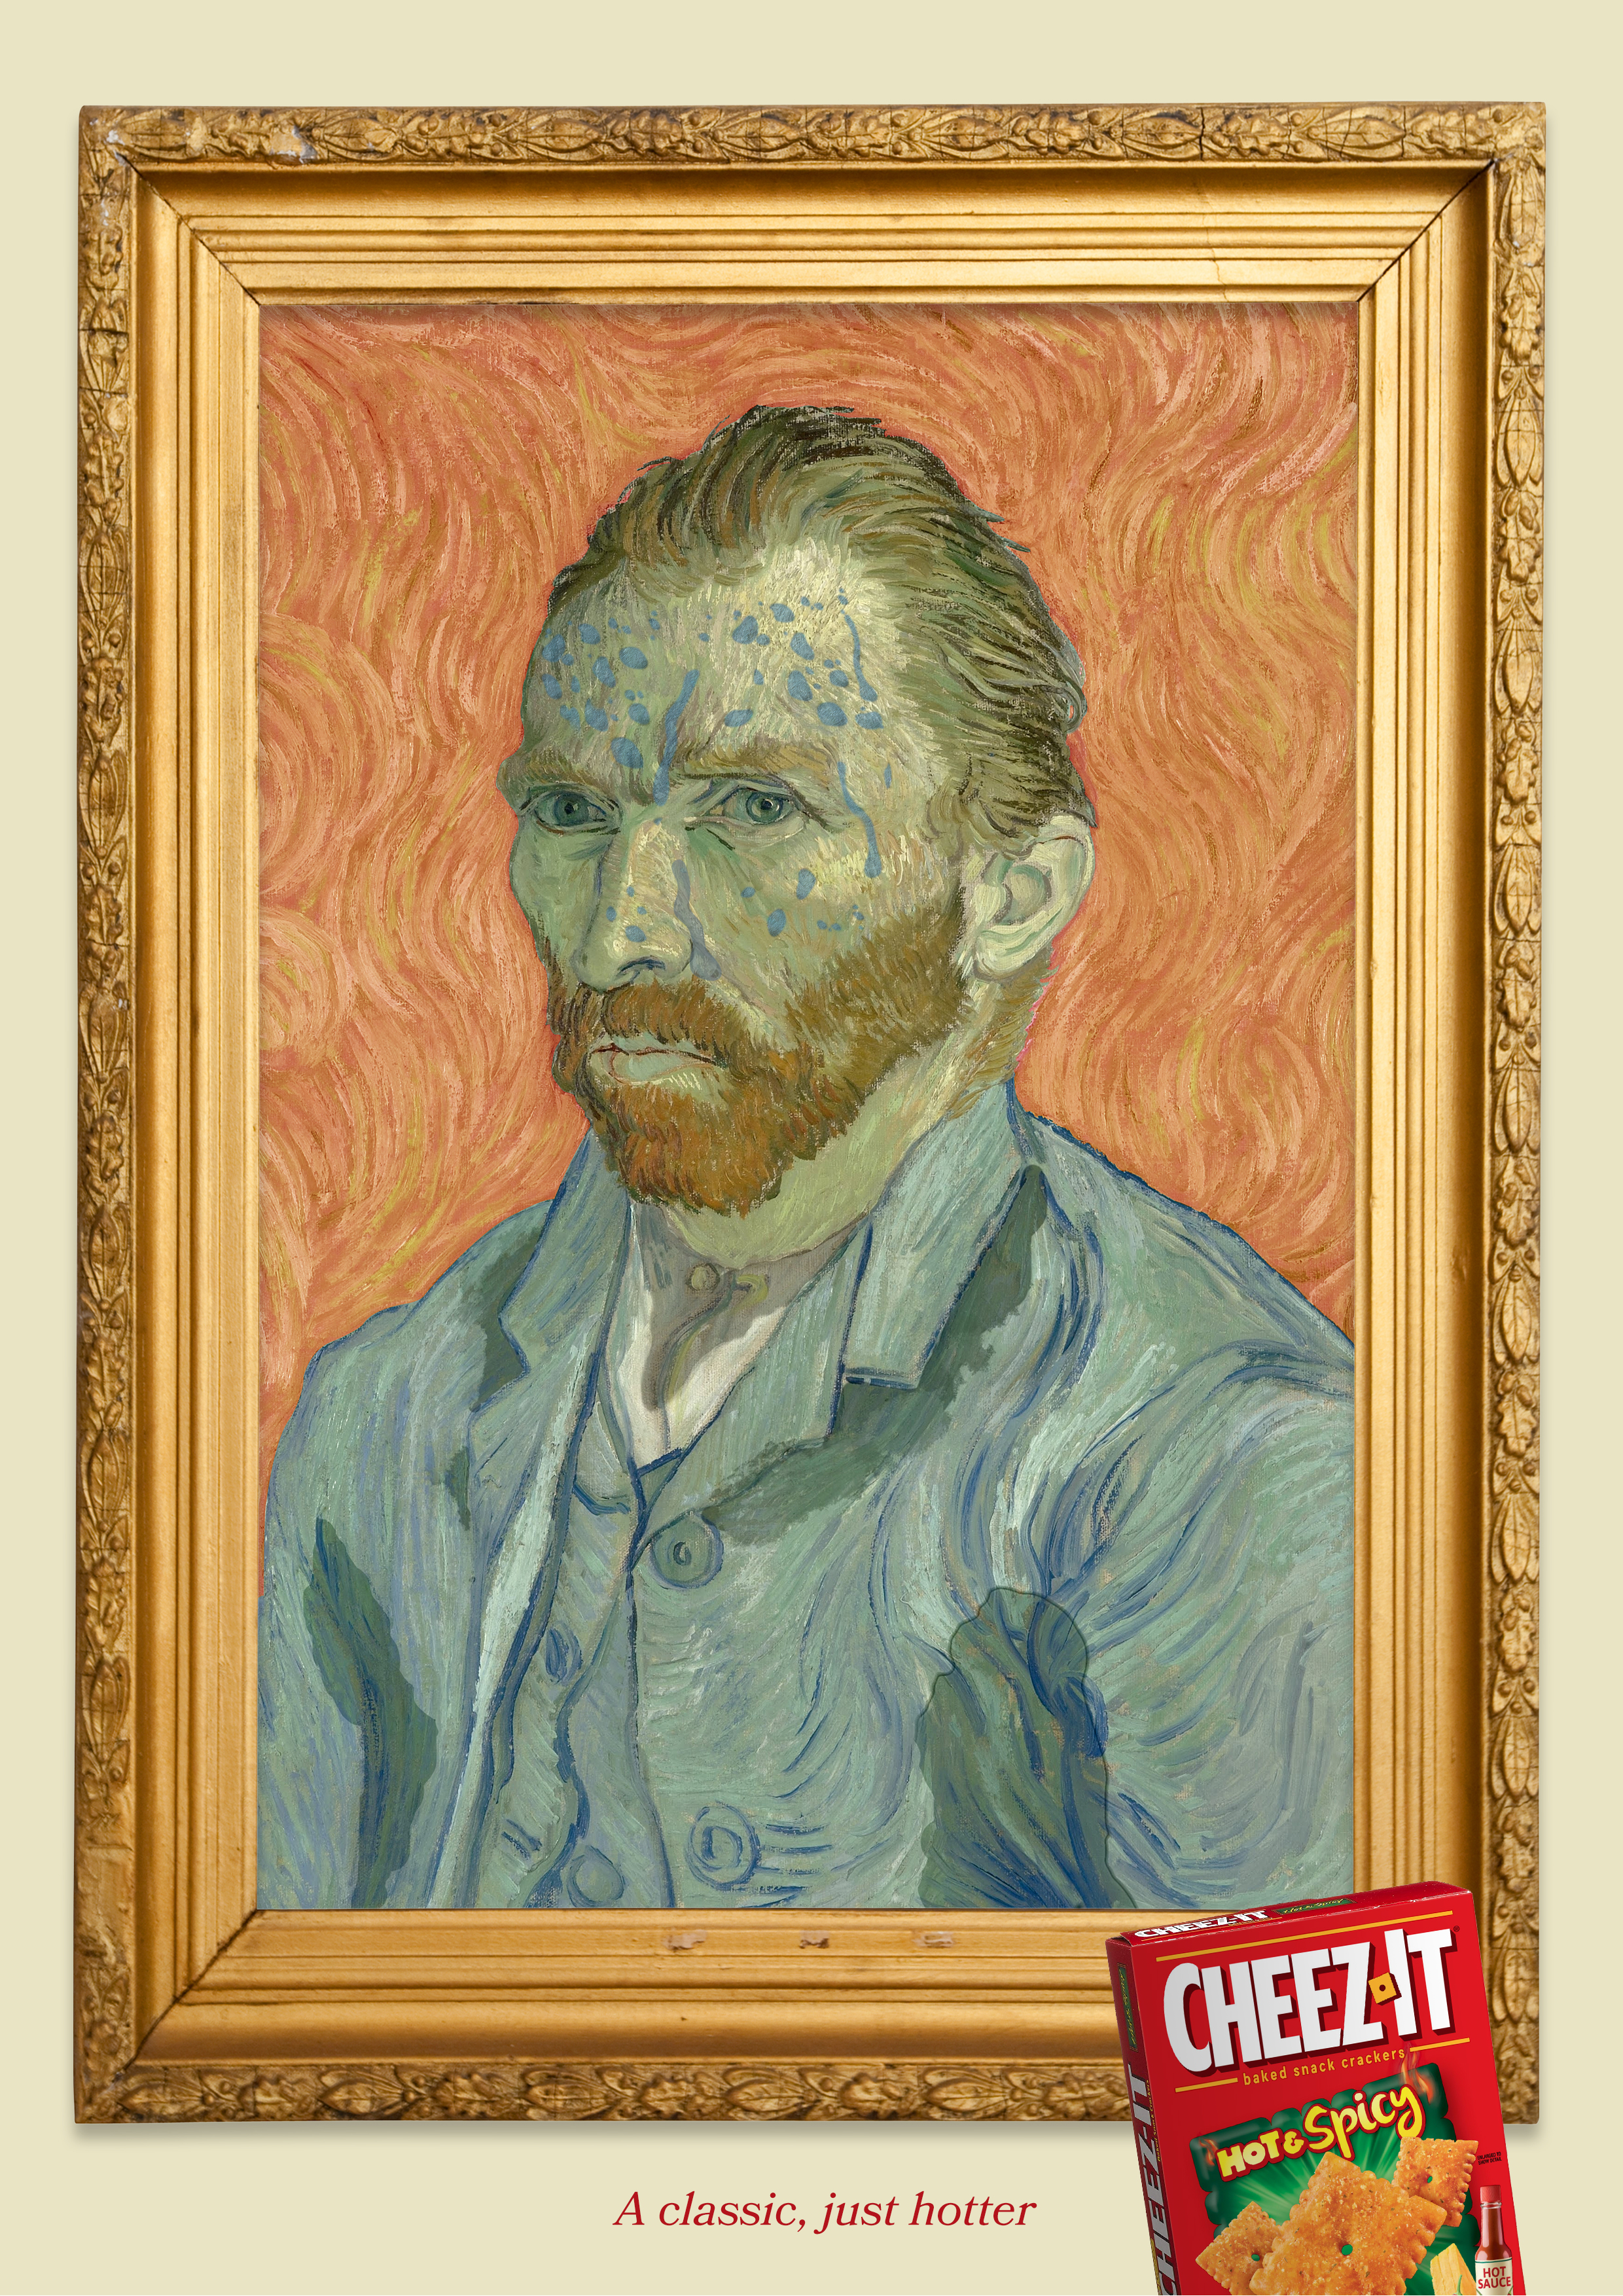 CheezIt_Comps_0002_VanGogh.jpg